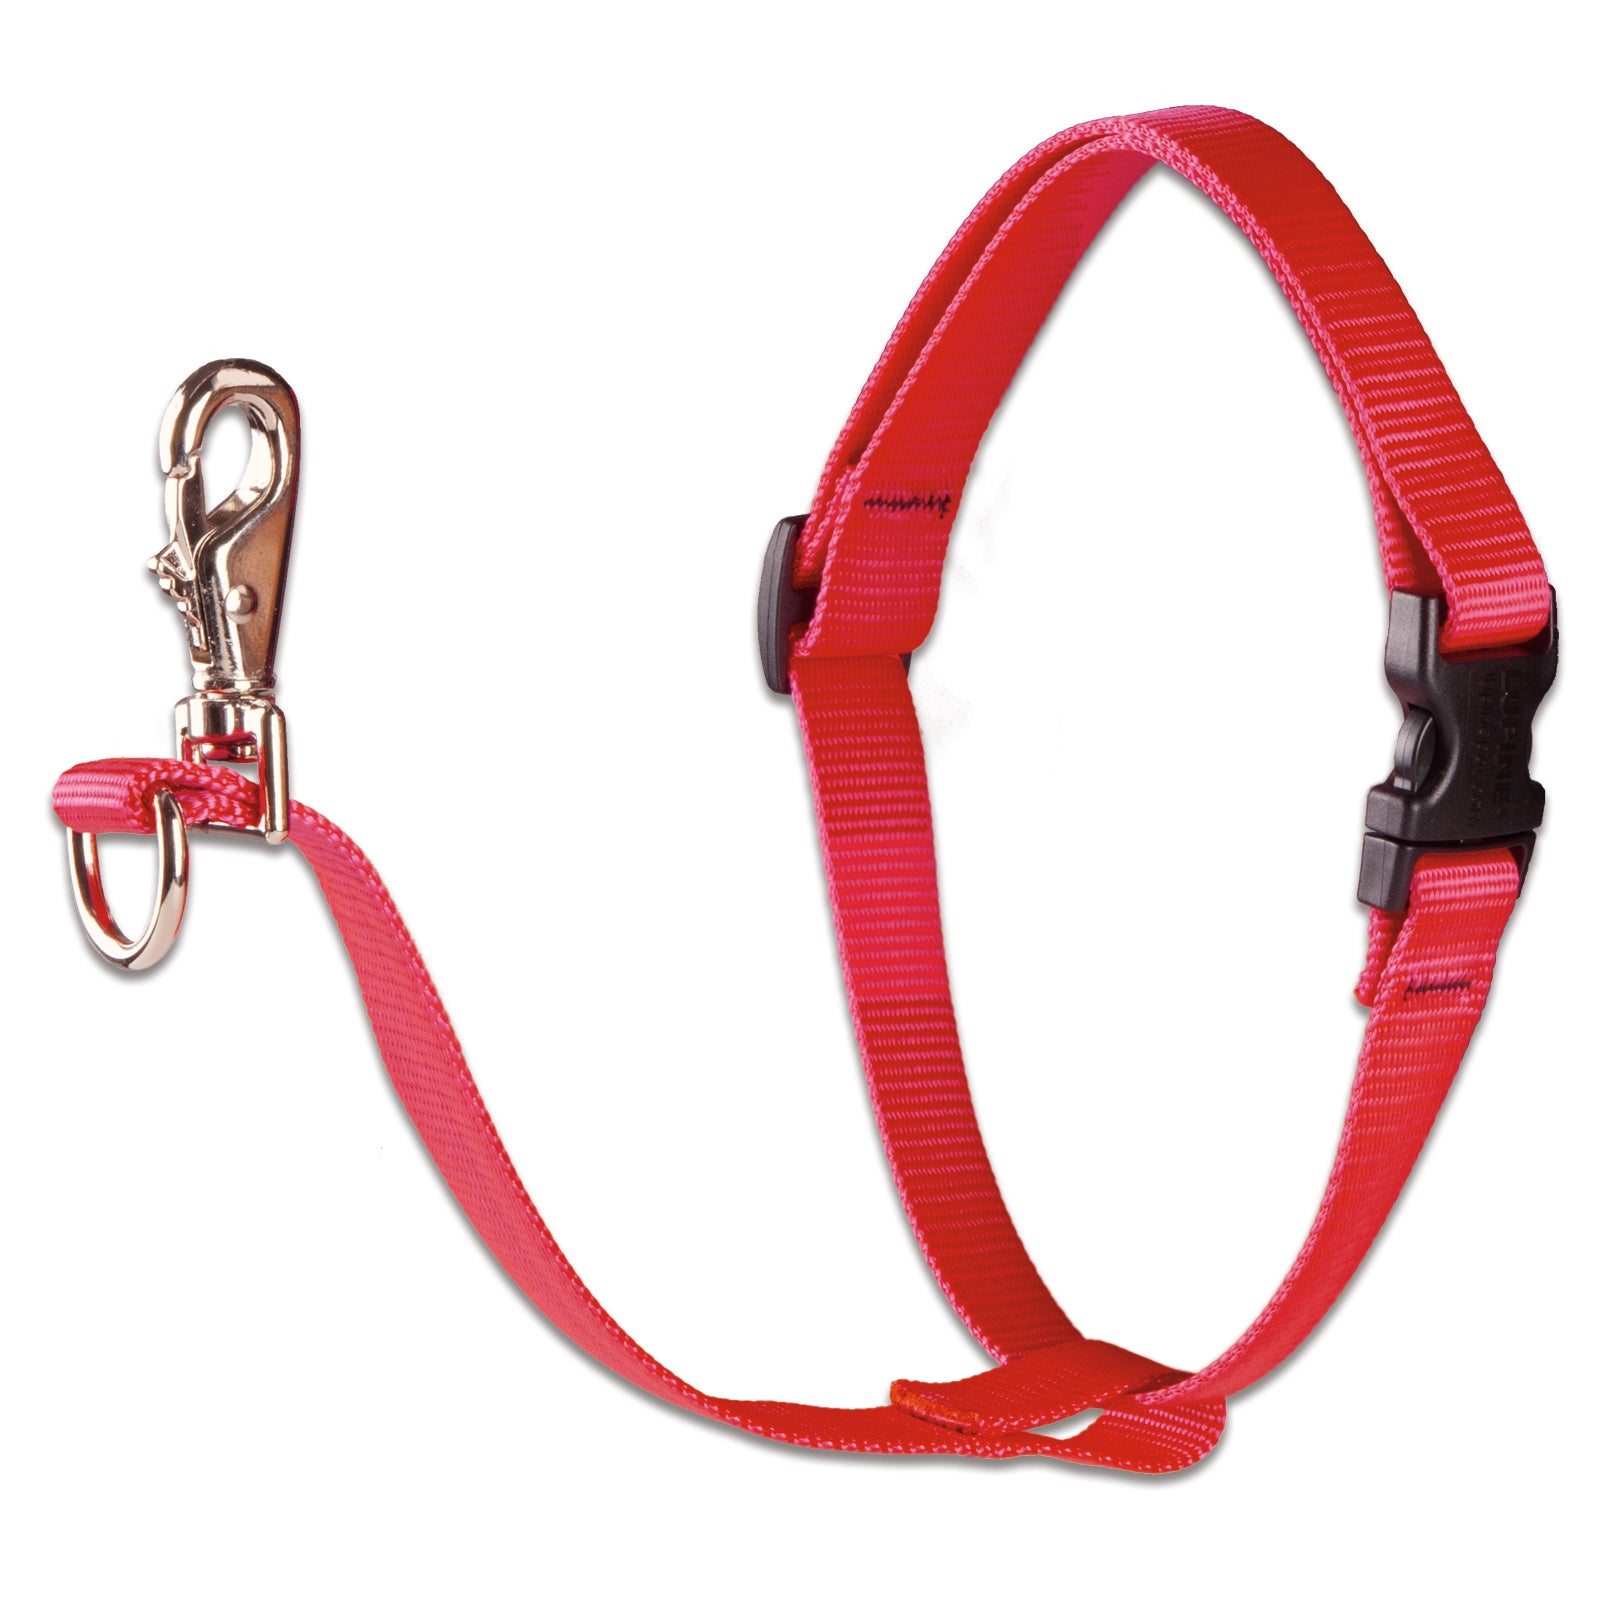 "LUPINE Collars & Leads Red 3/4"" X 14-24"" No Pull Dog Harn..."